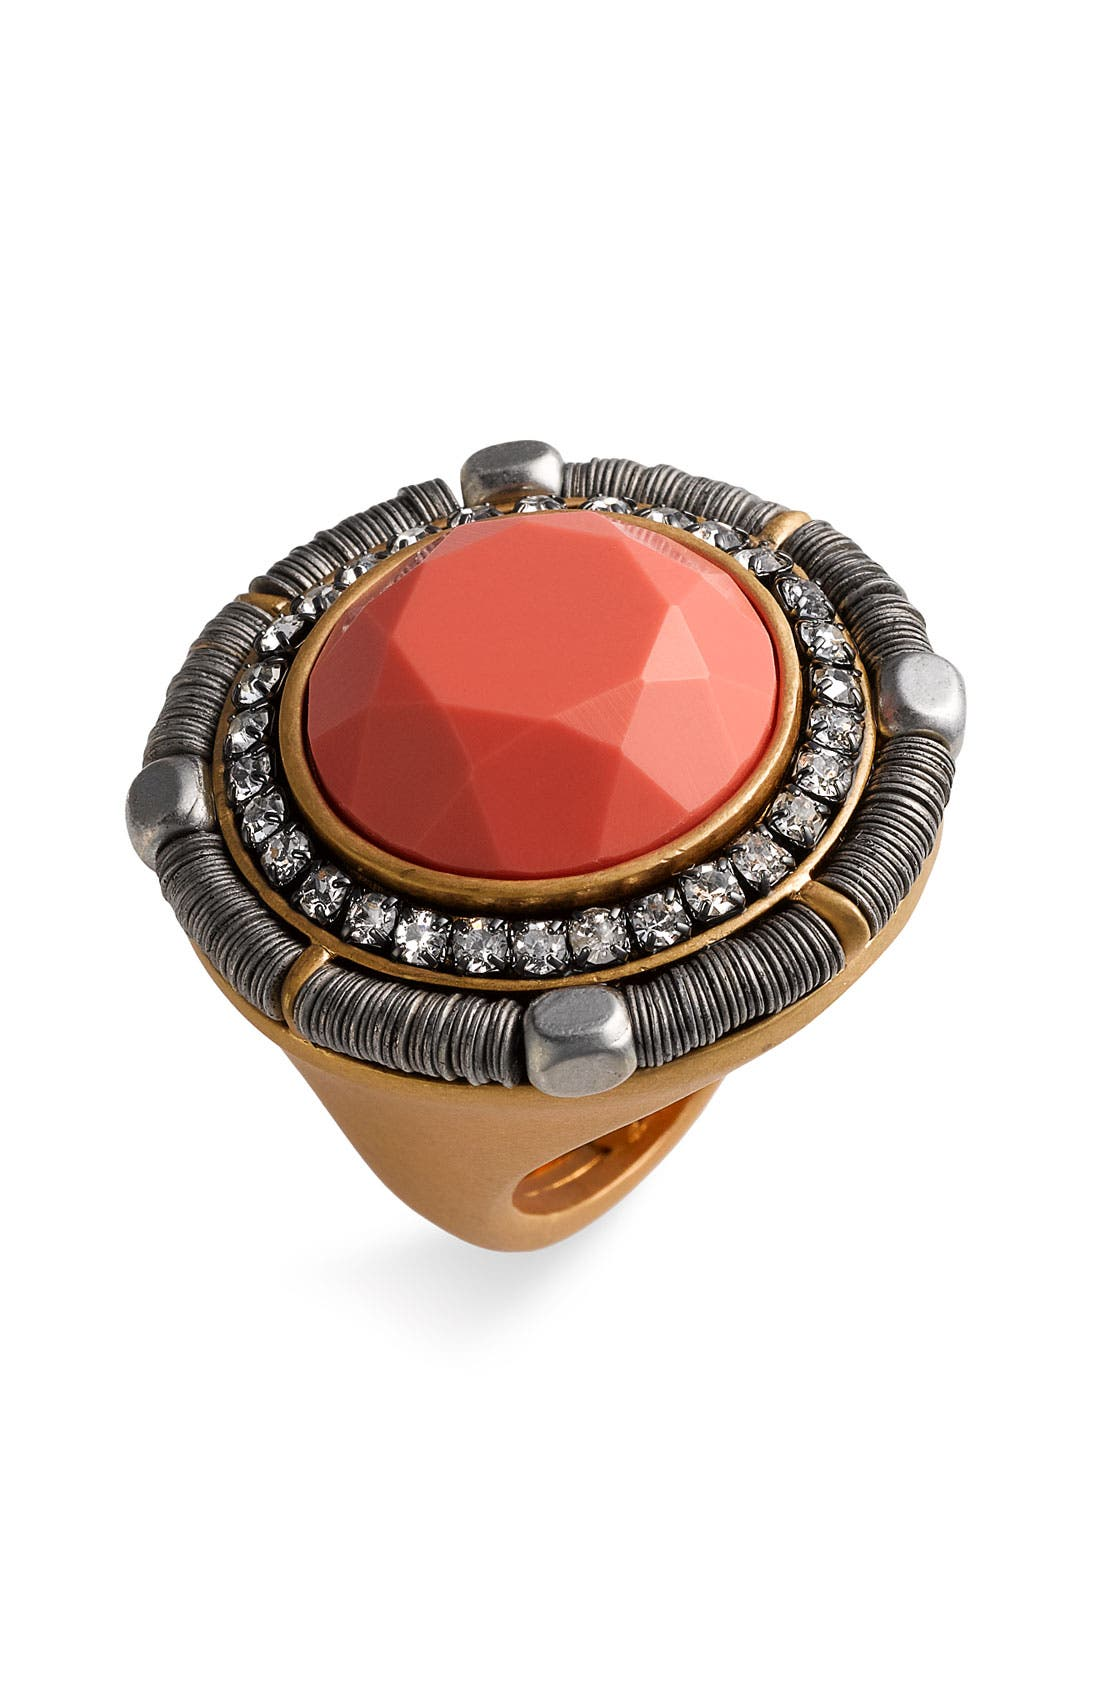 Alternate Image 1 Selected - Juicy Couture 'Wanderlust' Mixed Media Adjustable Ring